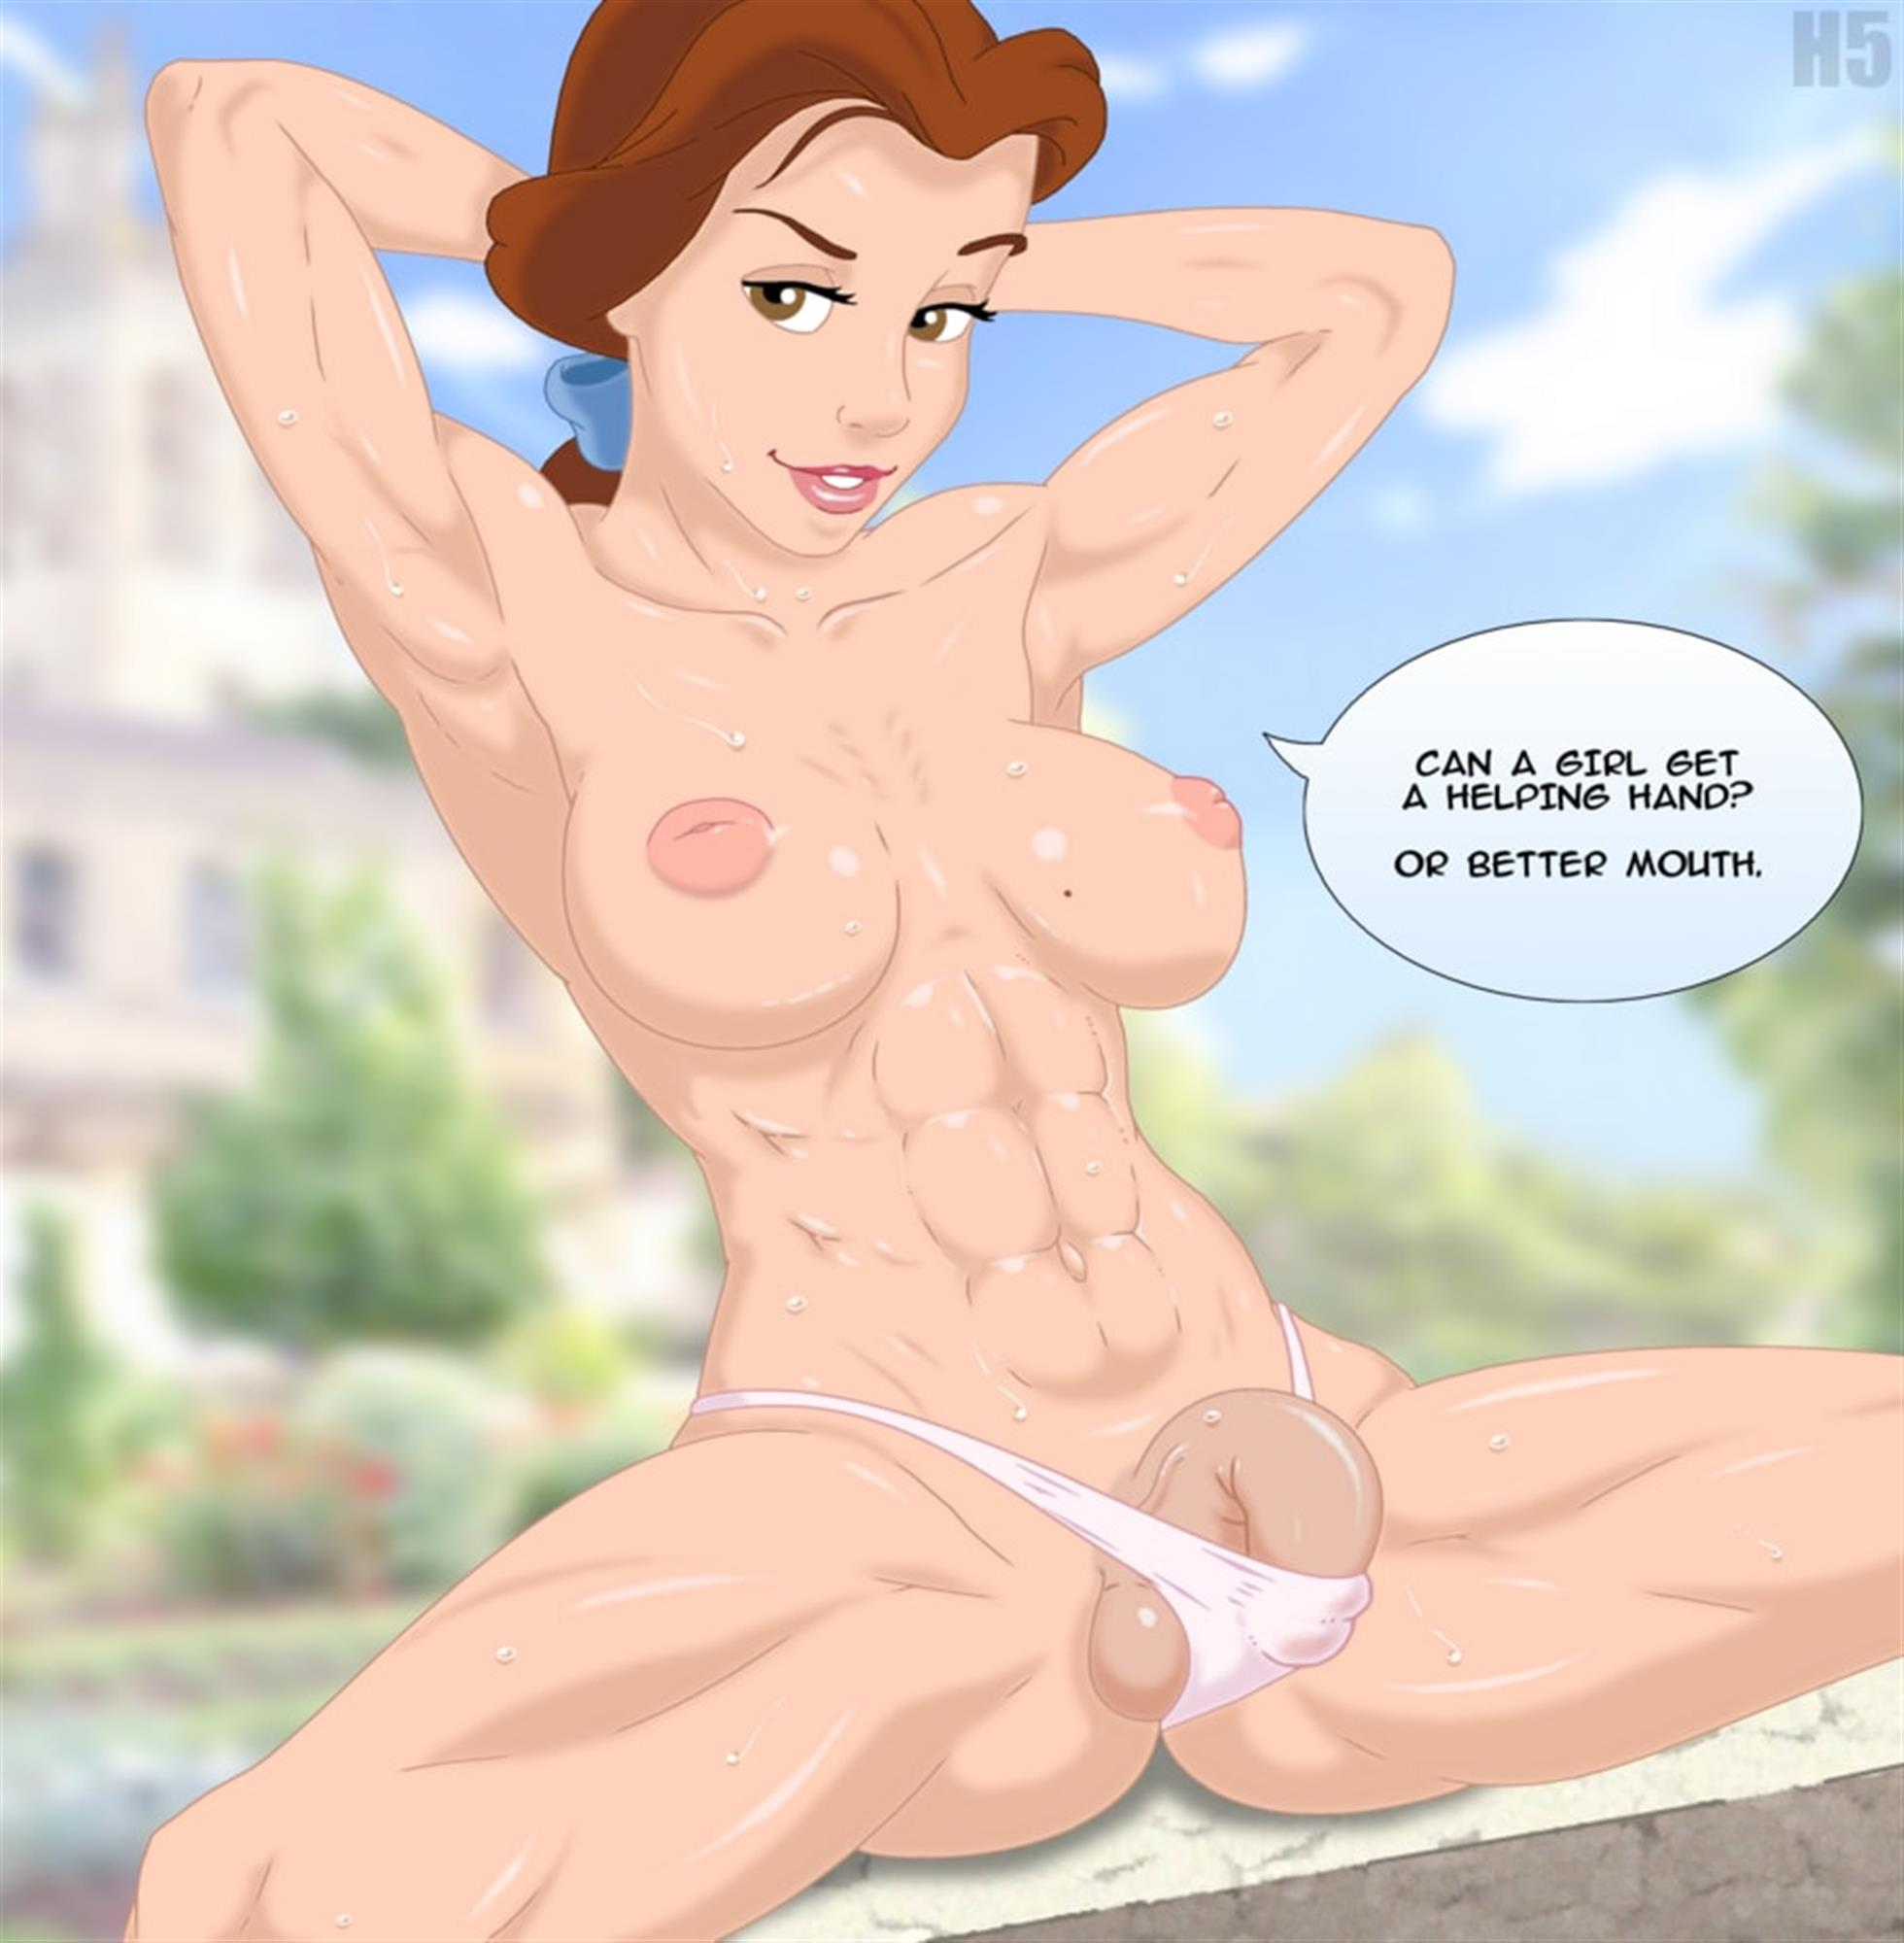 Disney male nudes-2114